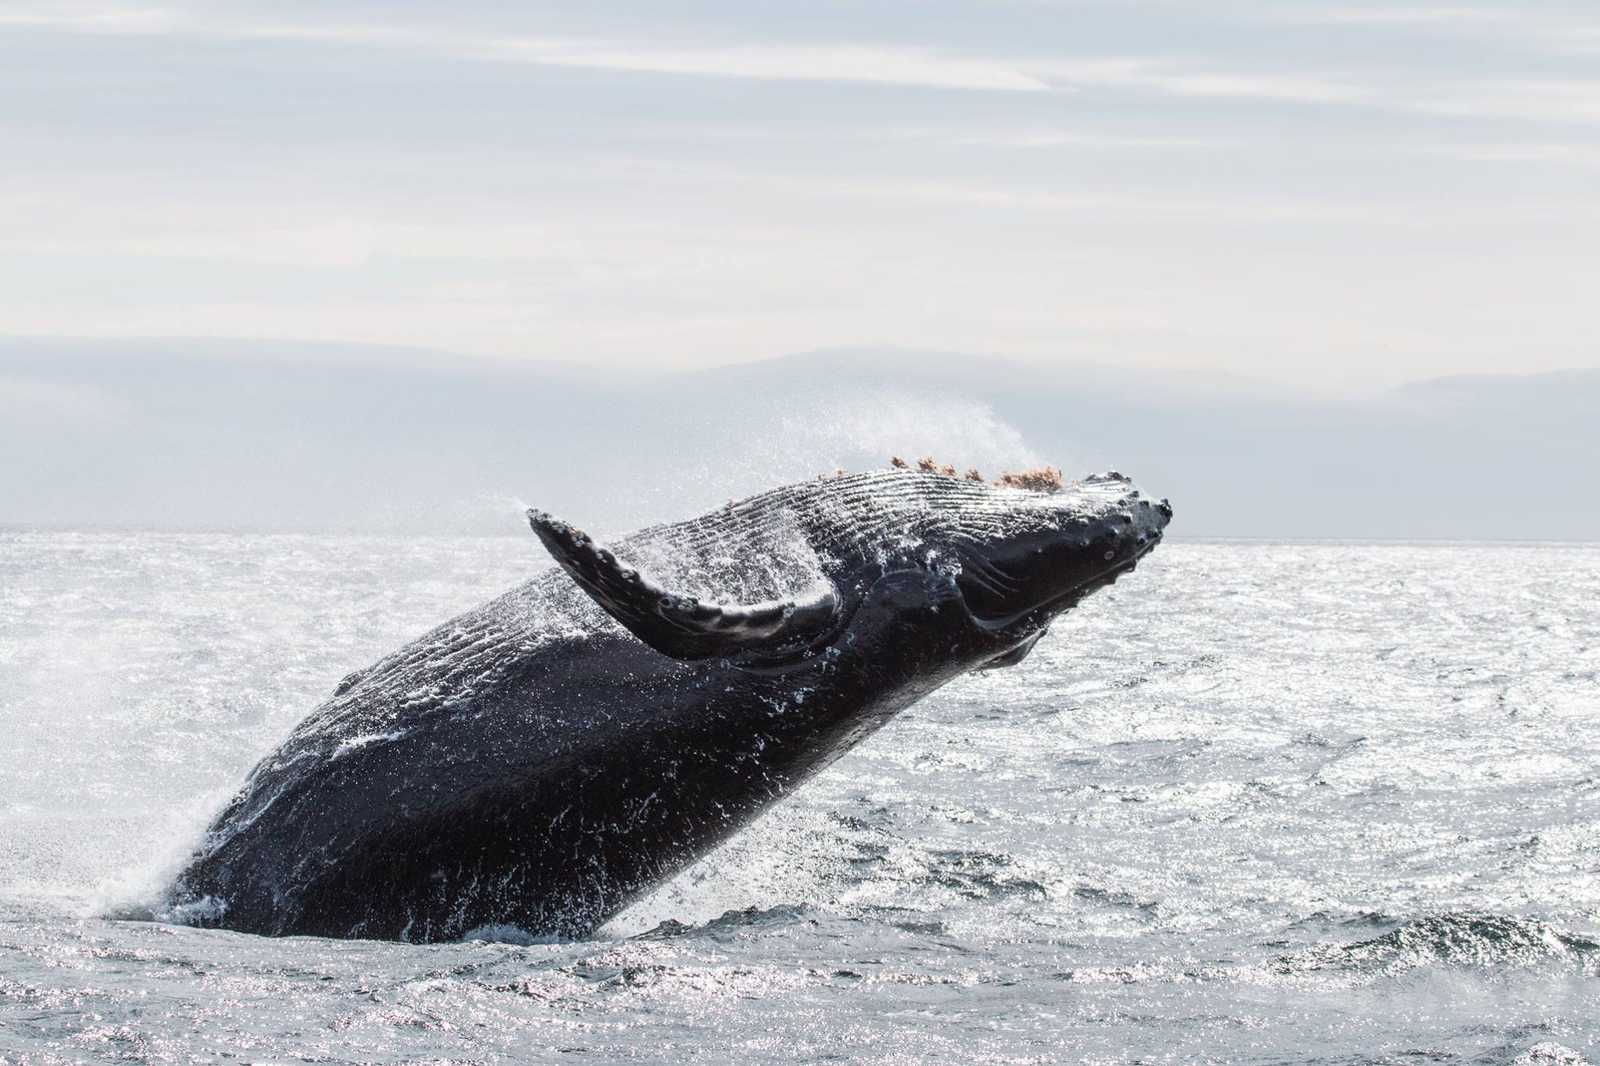 Best Whale Watching in BC, Vancouver Island - Humpback Whale Breaching - Eagle Wings Tour